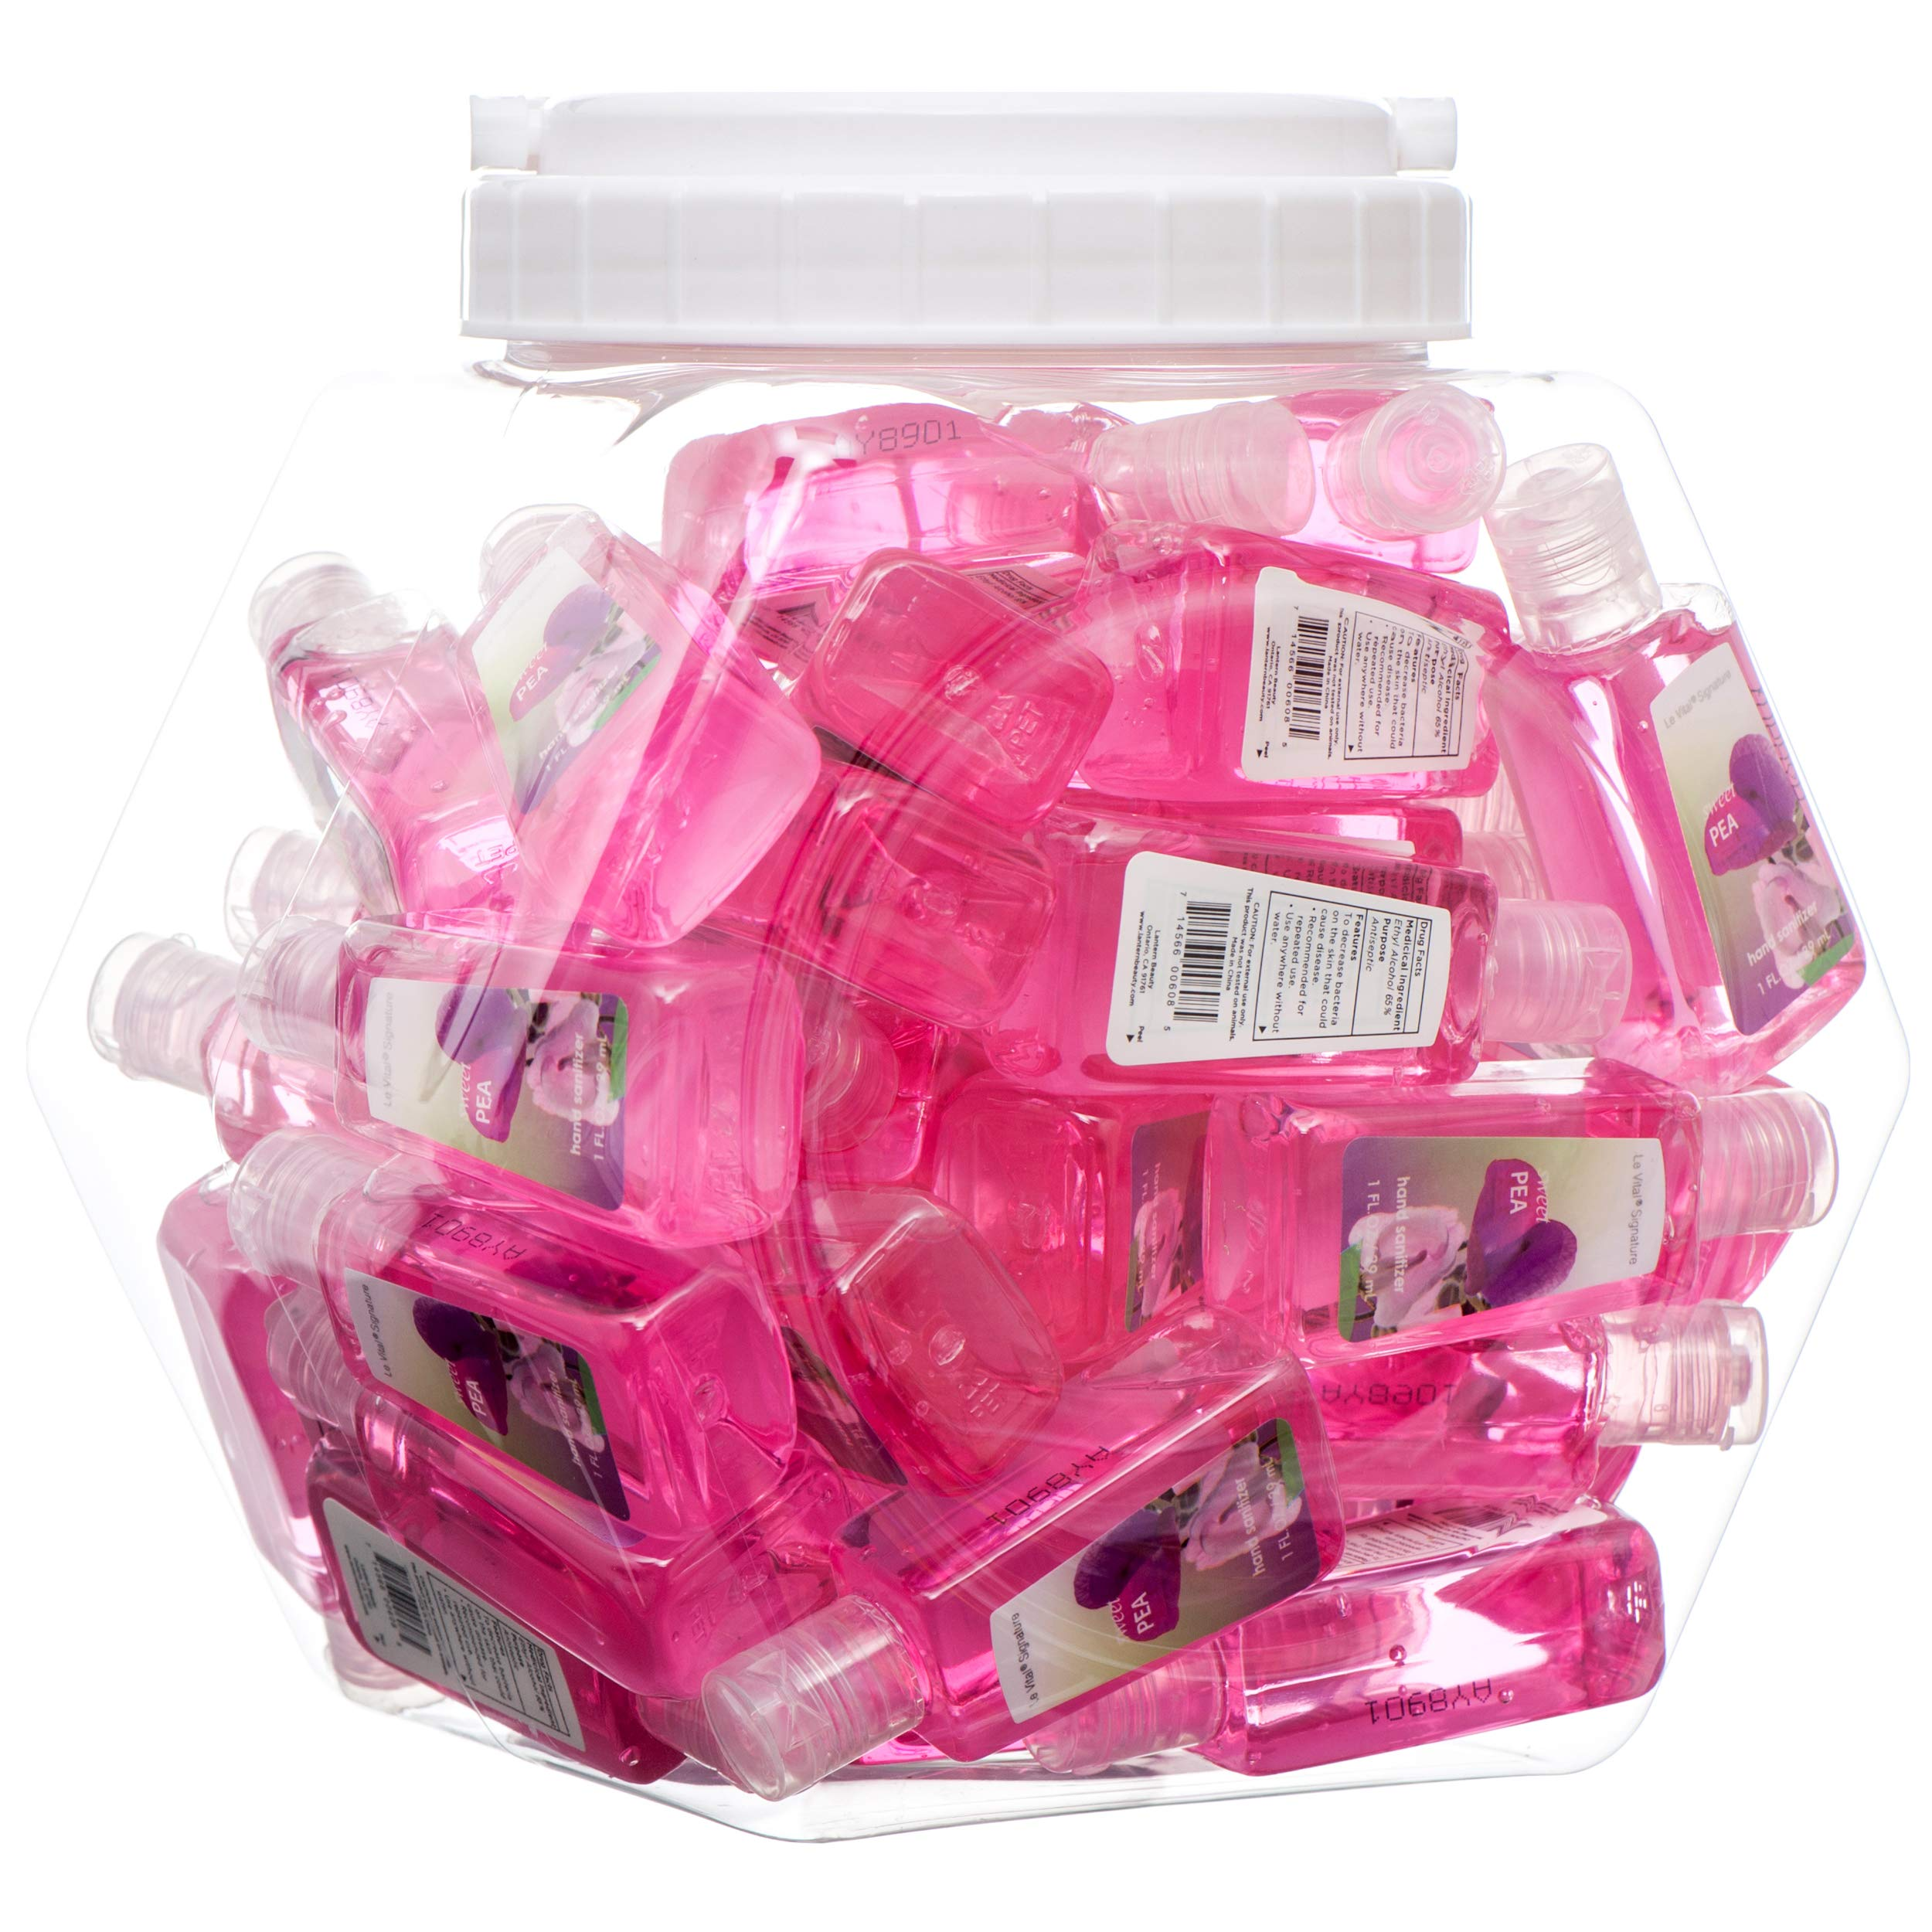 48 Individual Hand Sanitizer Bottles In a Bowl Display. Perfect Size for Baby Shower Favors, Wedding Receptions Gifts, Baptism Goody Bags.1 floz Each. (Sweet Pea)